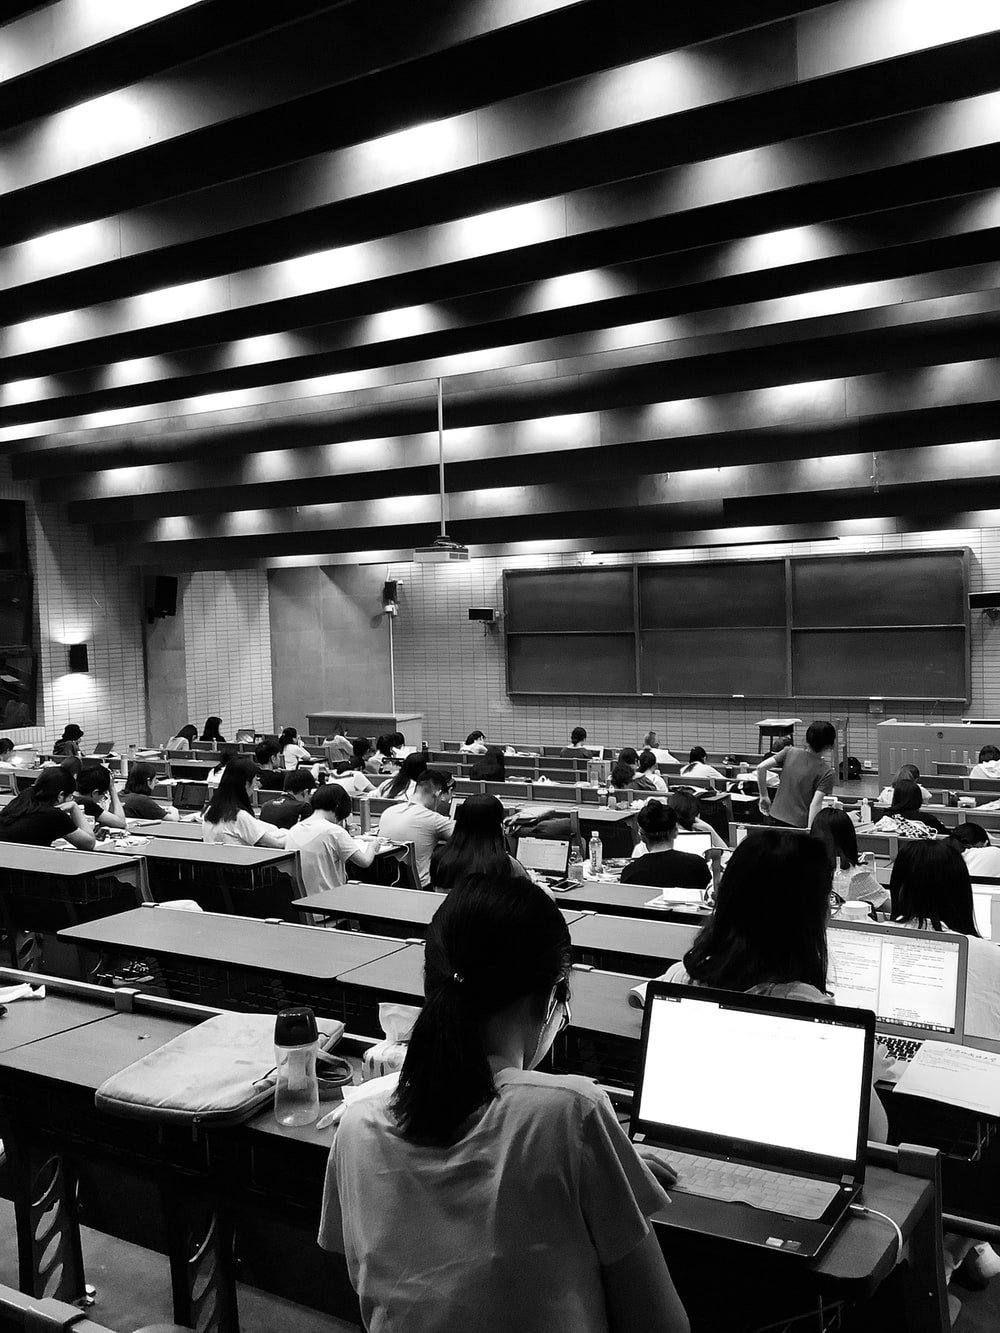 graysacale photo of students in room